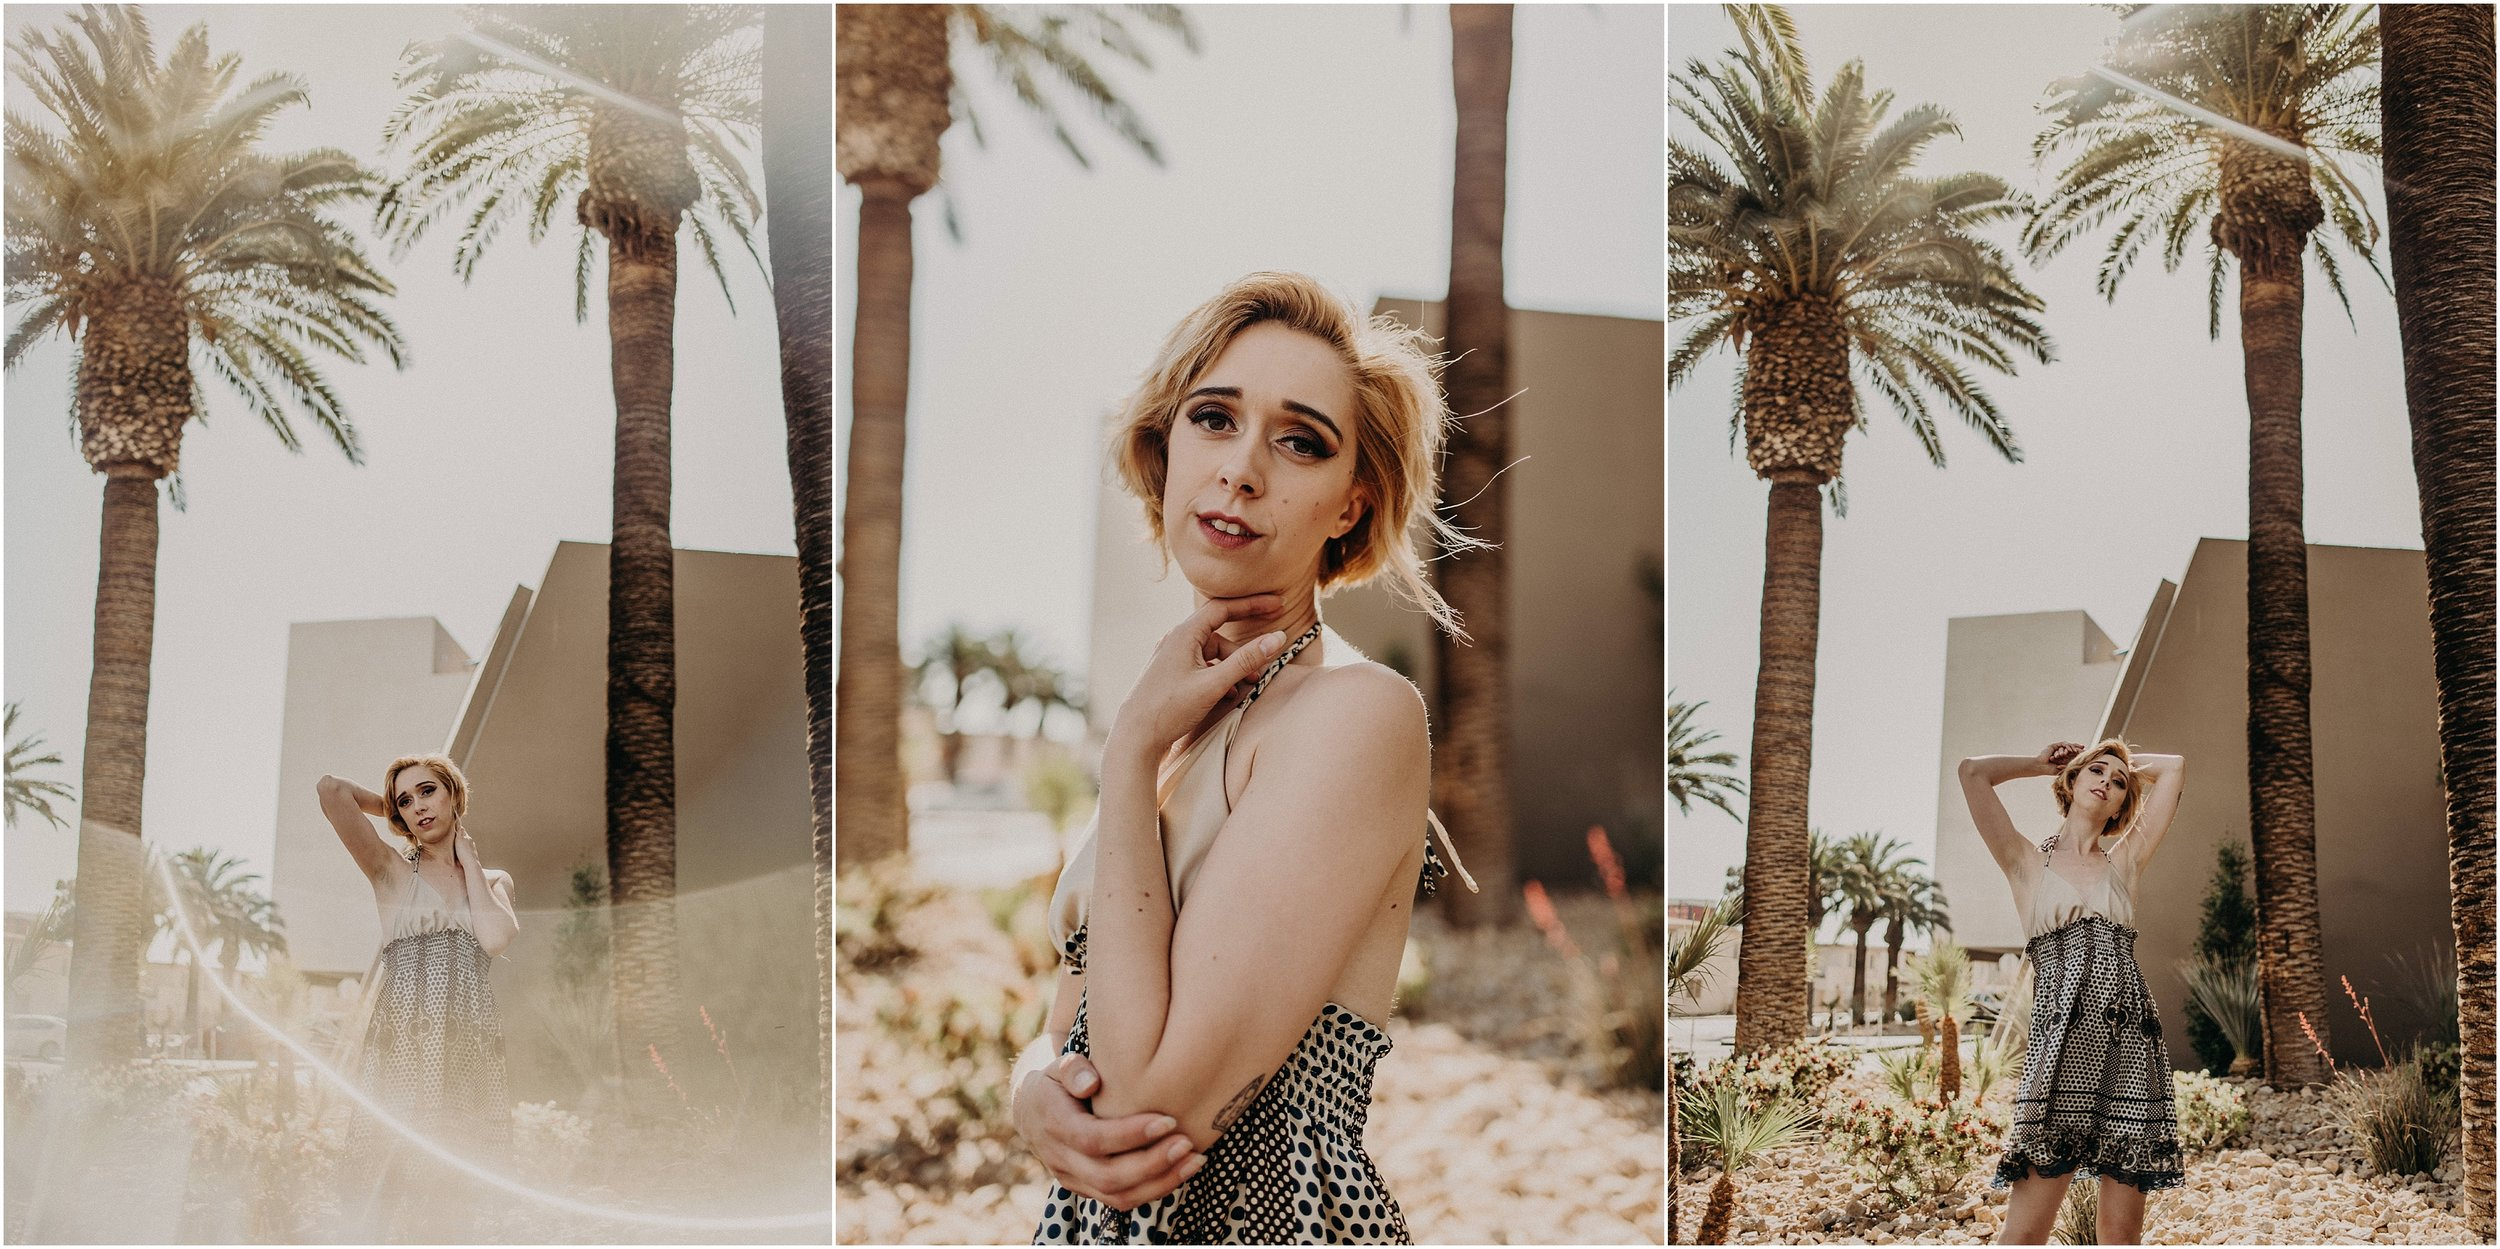 Jenna Davis, Las Vegas model, poses after styled elopement inspiration shoot